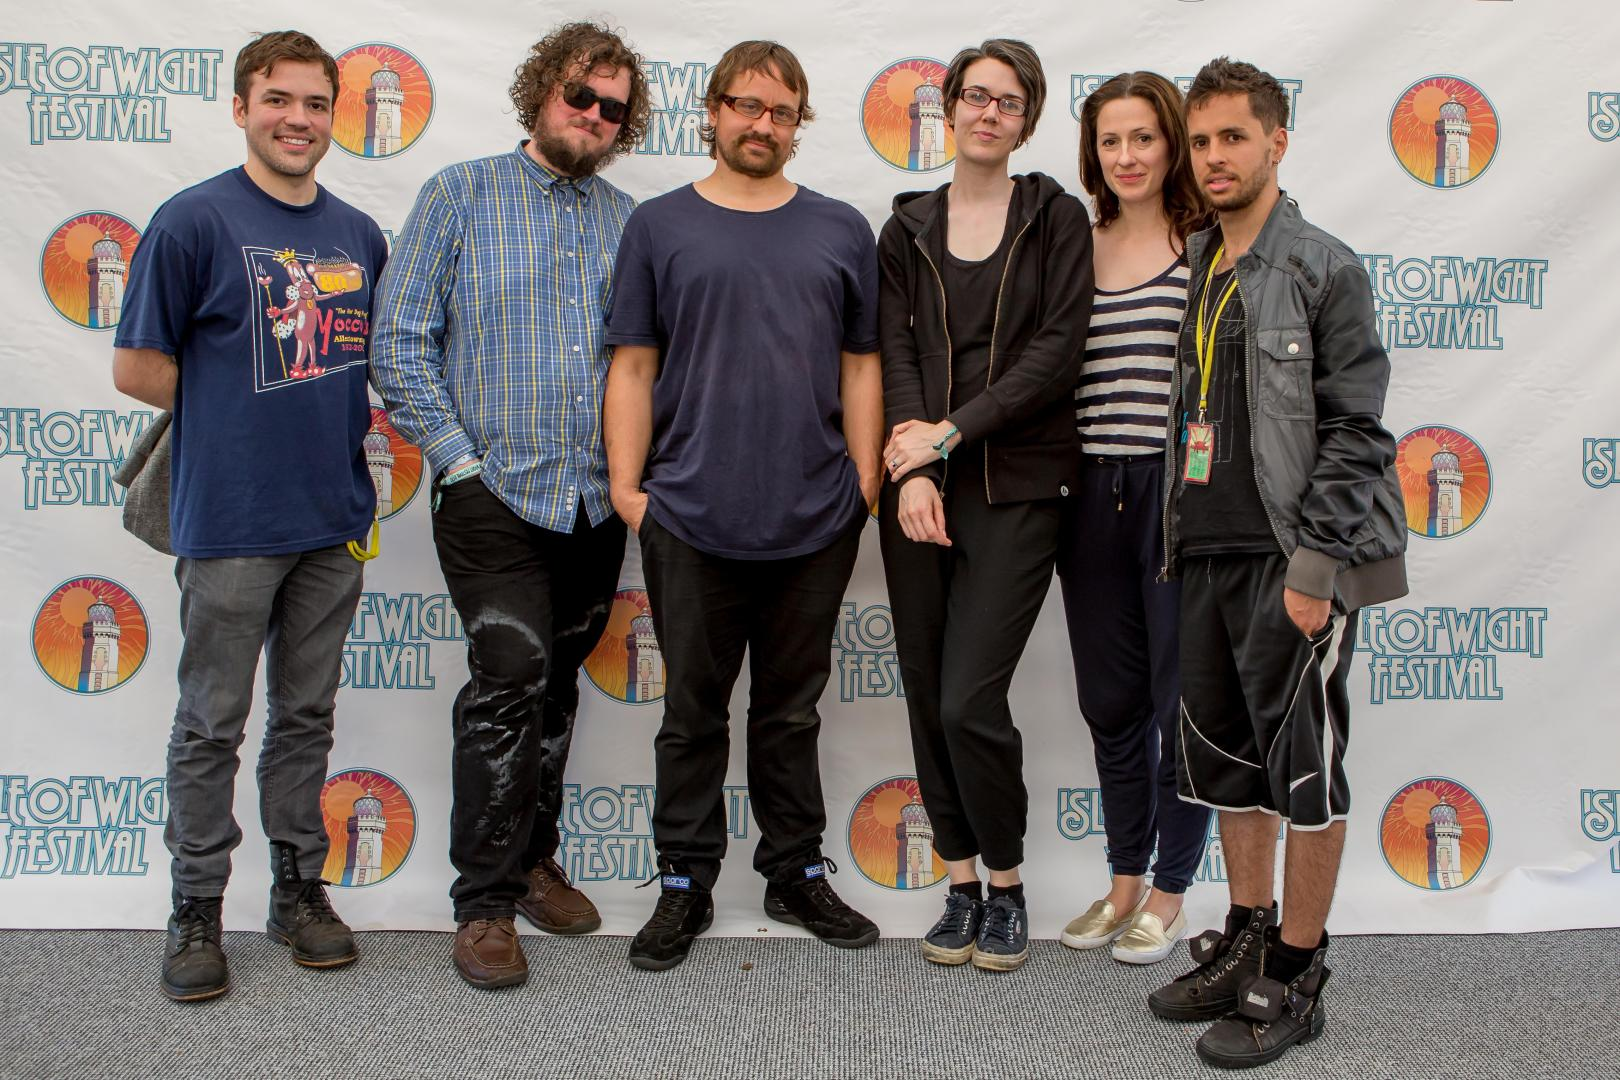 Backstage at Isle of Wight Festival 2017 with Wheatus